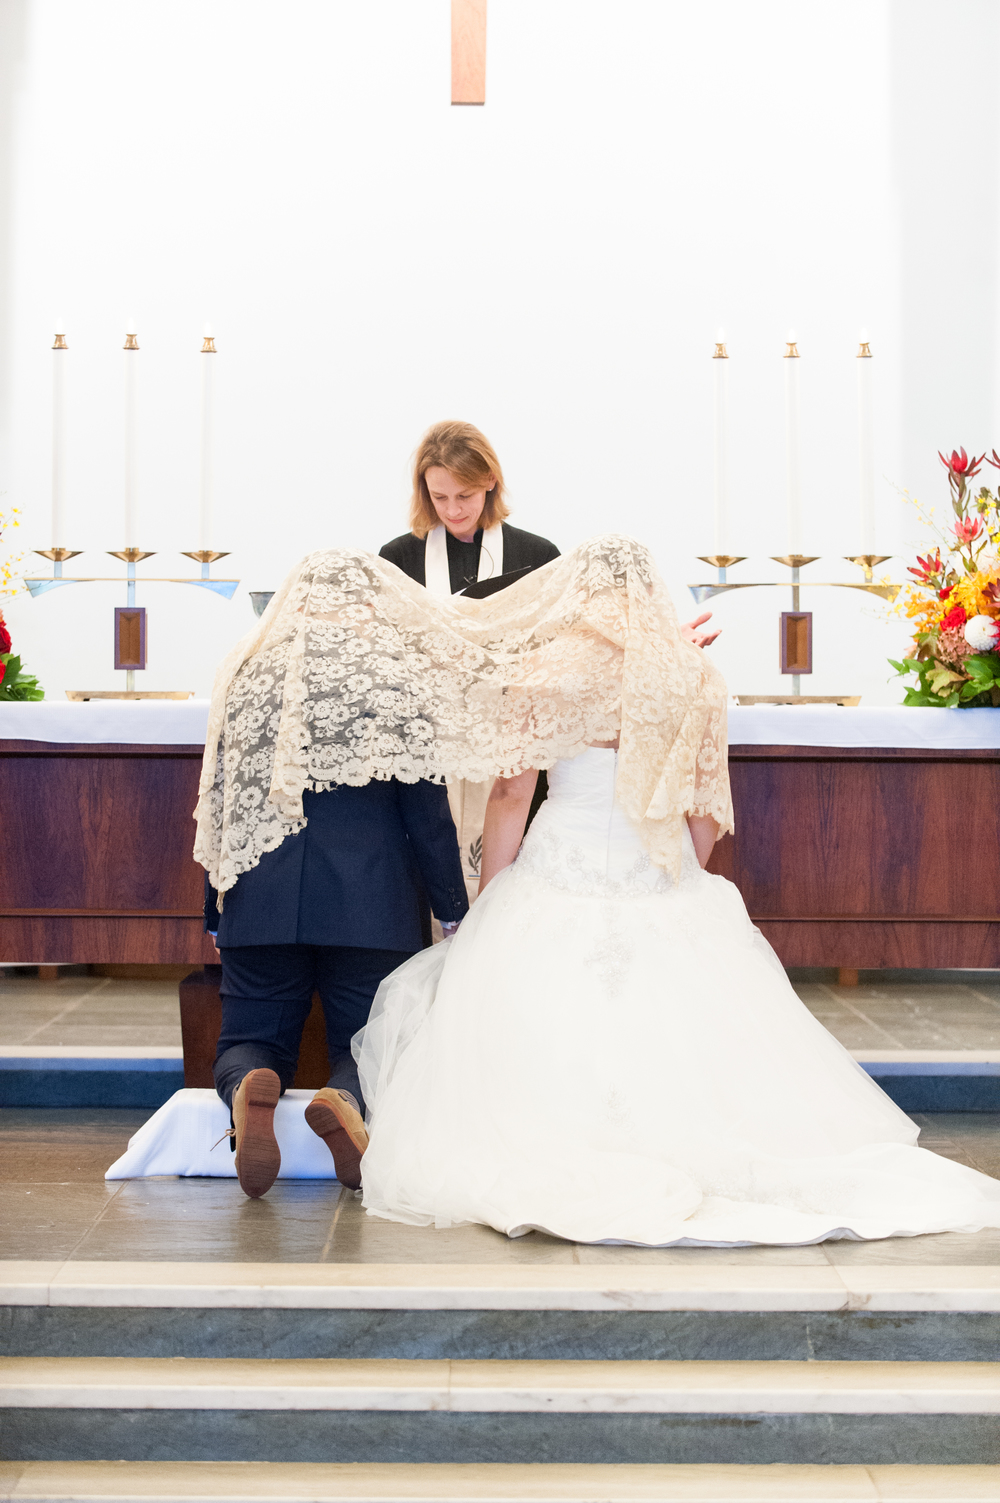 Pictured Above: Most recently, the mantilla was used in the wedding of Gloria's daughter Alexandra and her wife Kate in 2014.